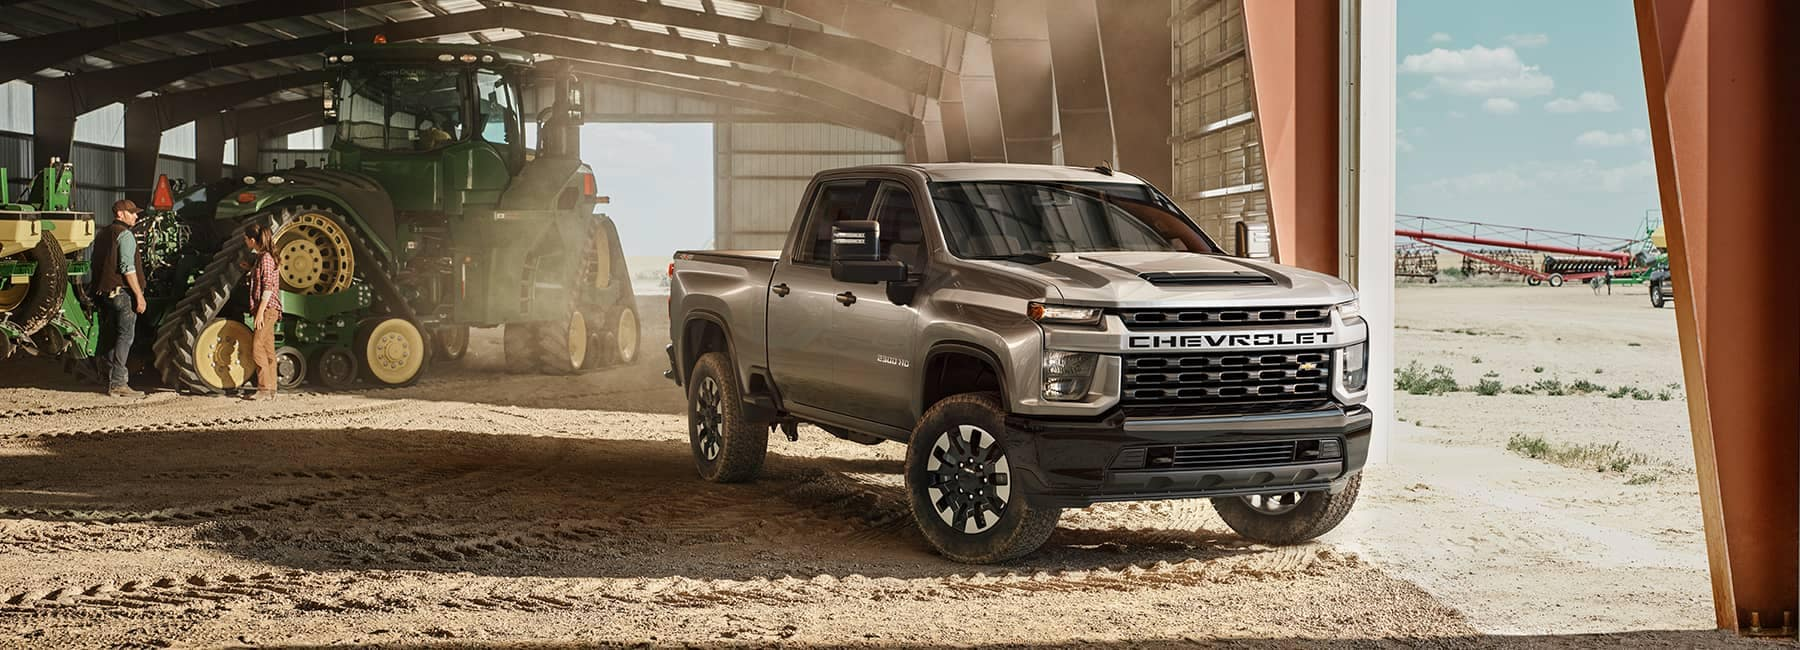 2020 Chevrolet Silverado 2500HD Crew Cab on a Work Site